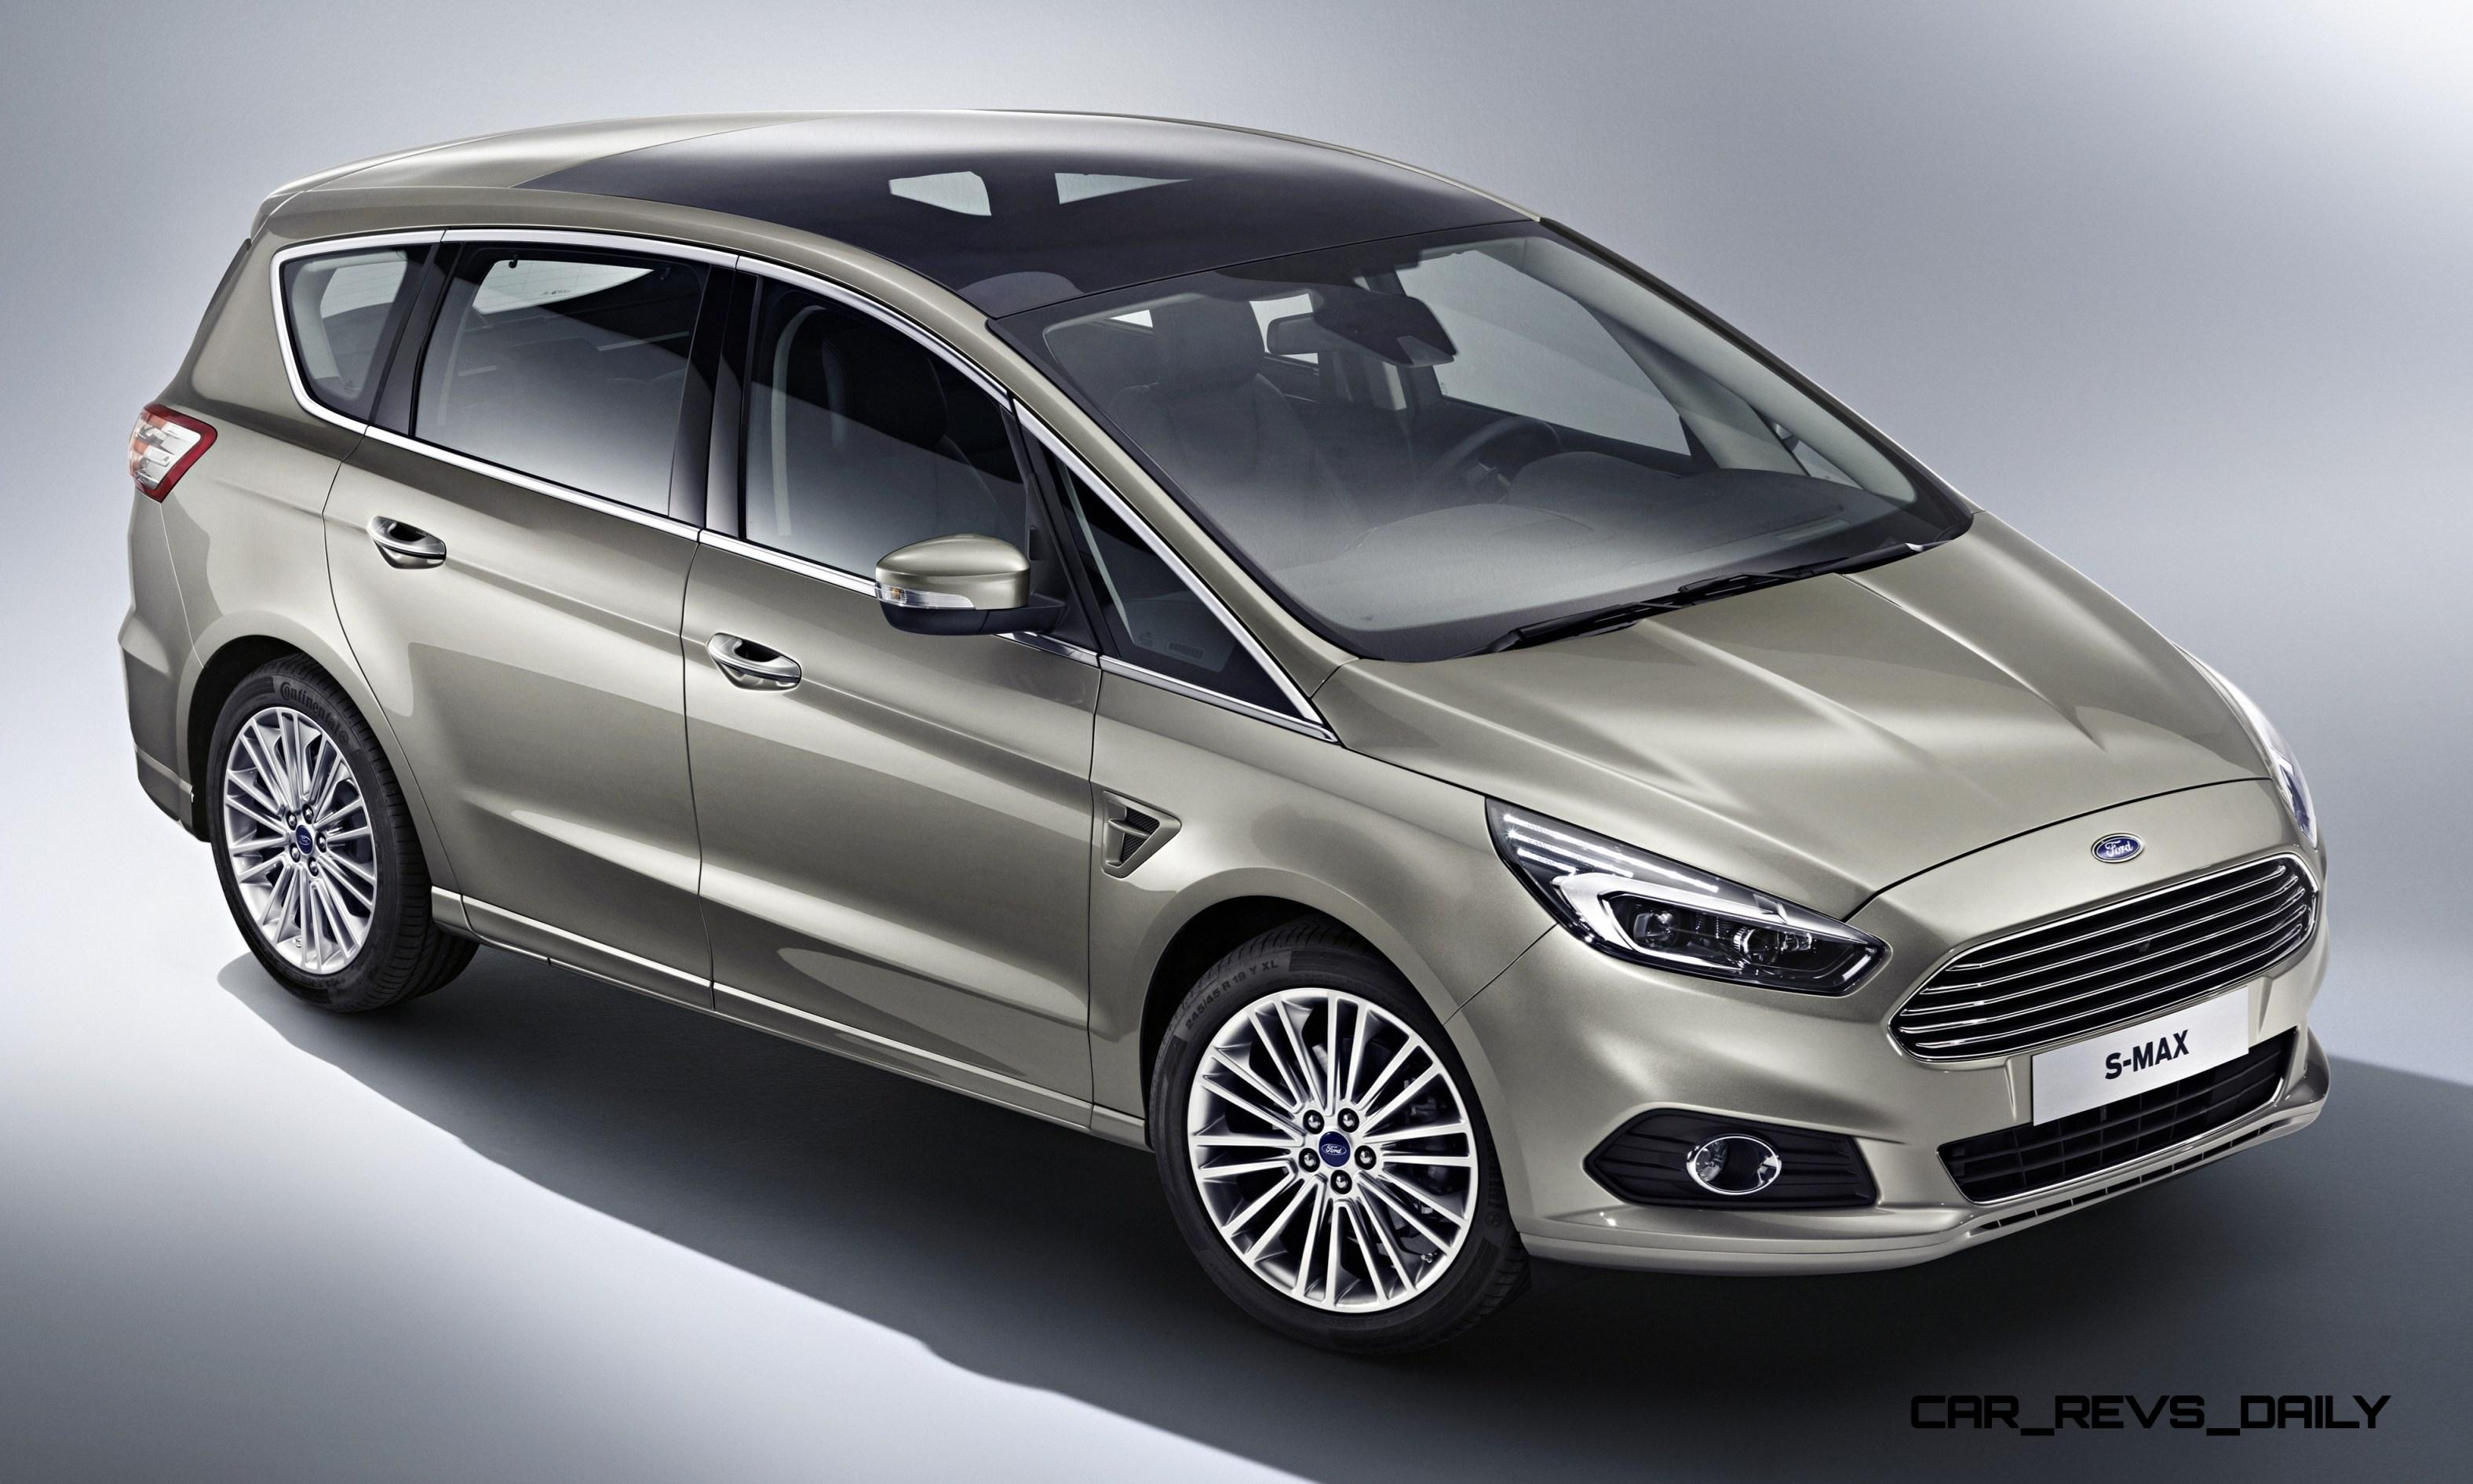 2015 ford s max van adds led lighting and next gen sync in comprehensive redesign. Black Bedroom Furniture Sets. Home Design Ideas